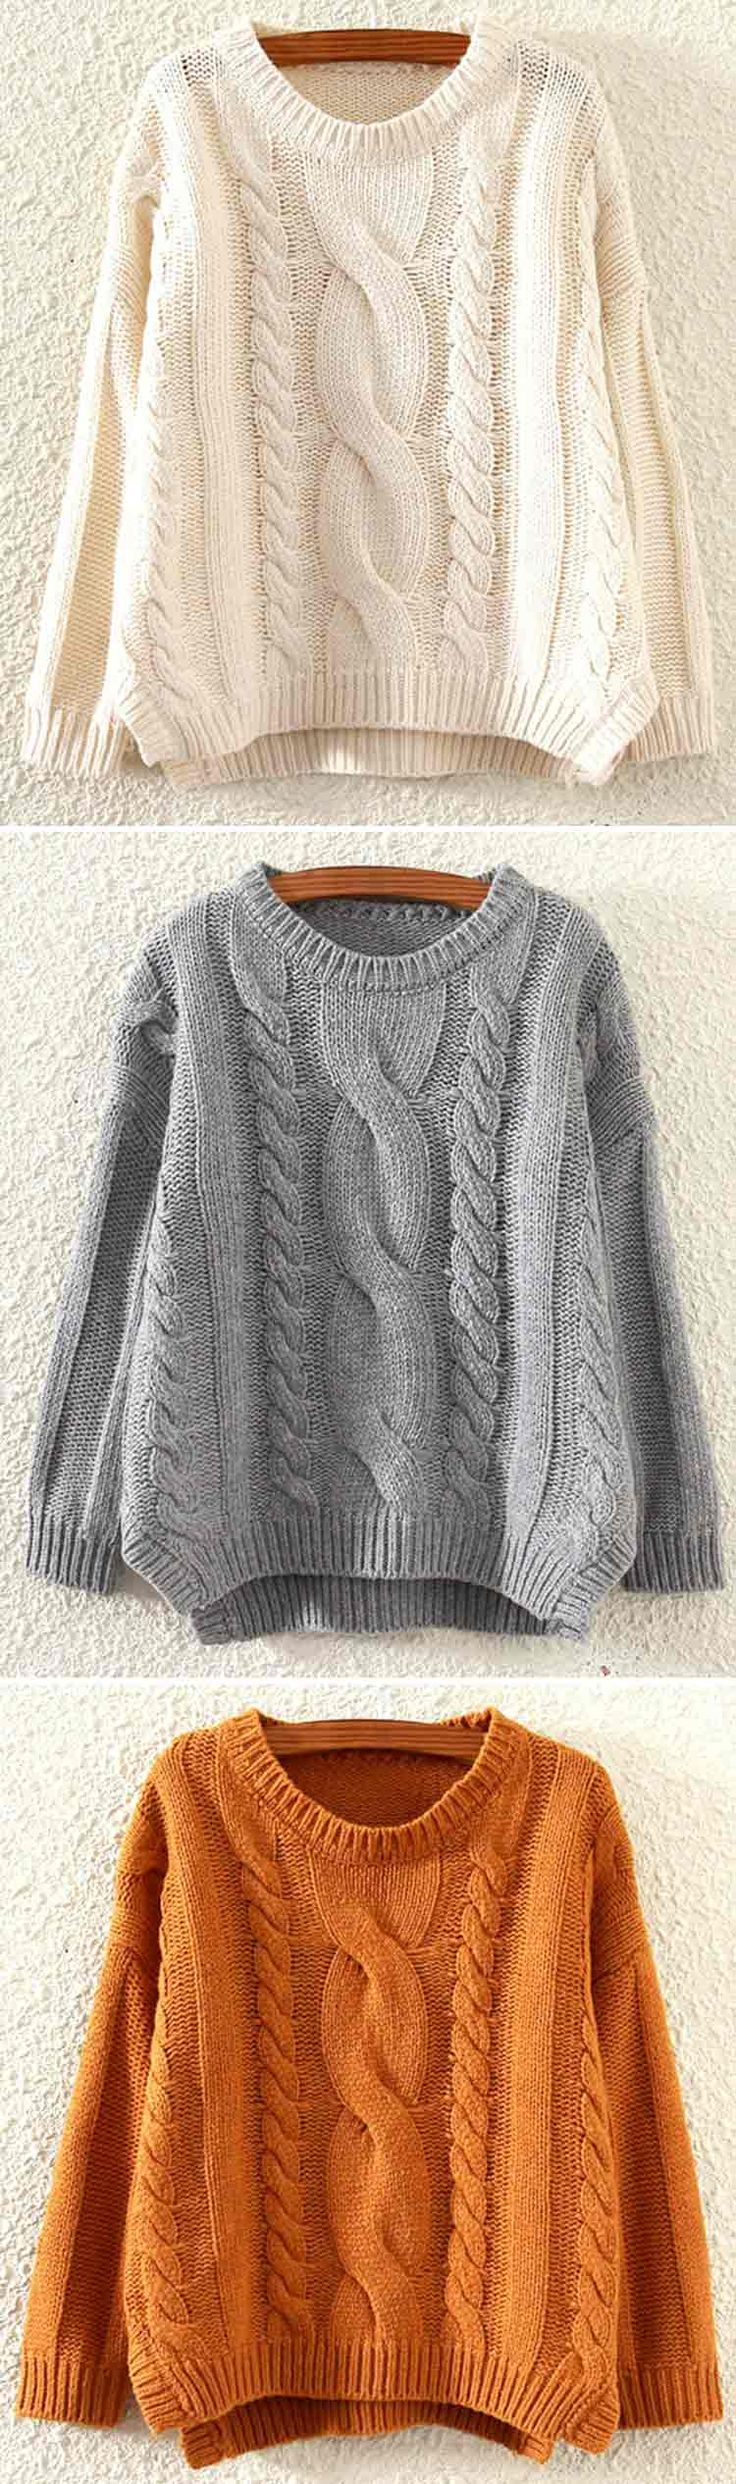 Absolutely good quality! $34.99 Only with free shipping&easy return! This twist knitting sweater is characterized by side slits&drop shoulder! We know you are about to fall head over heals in love with this ribbed piece!